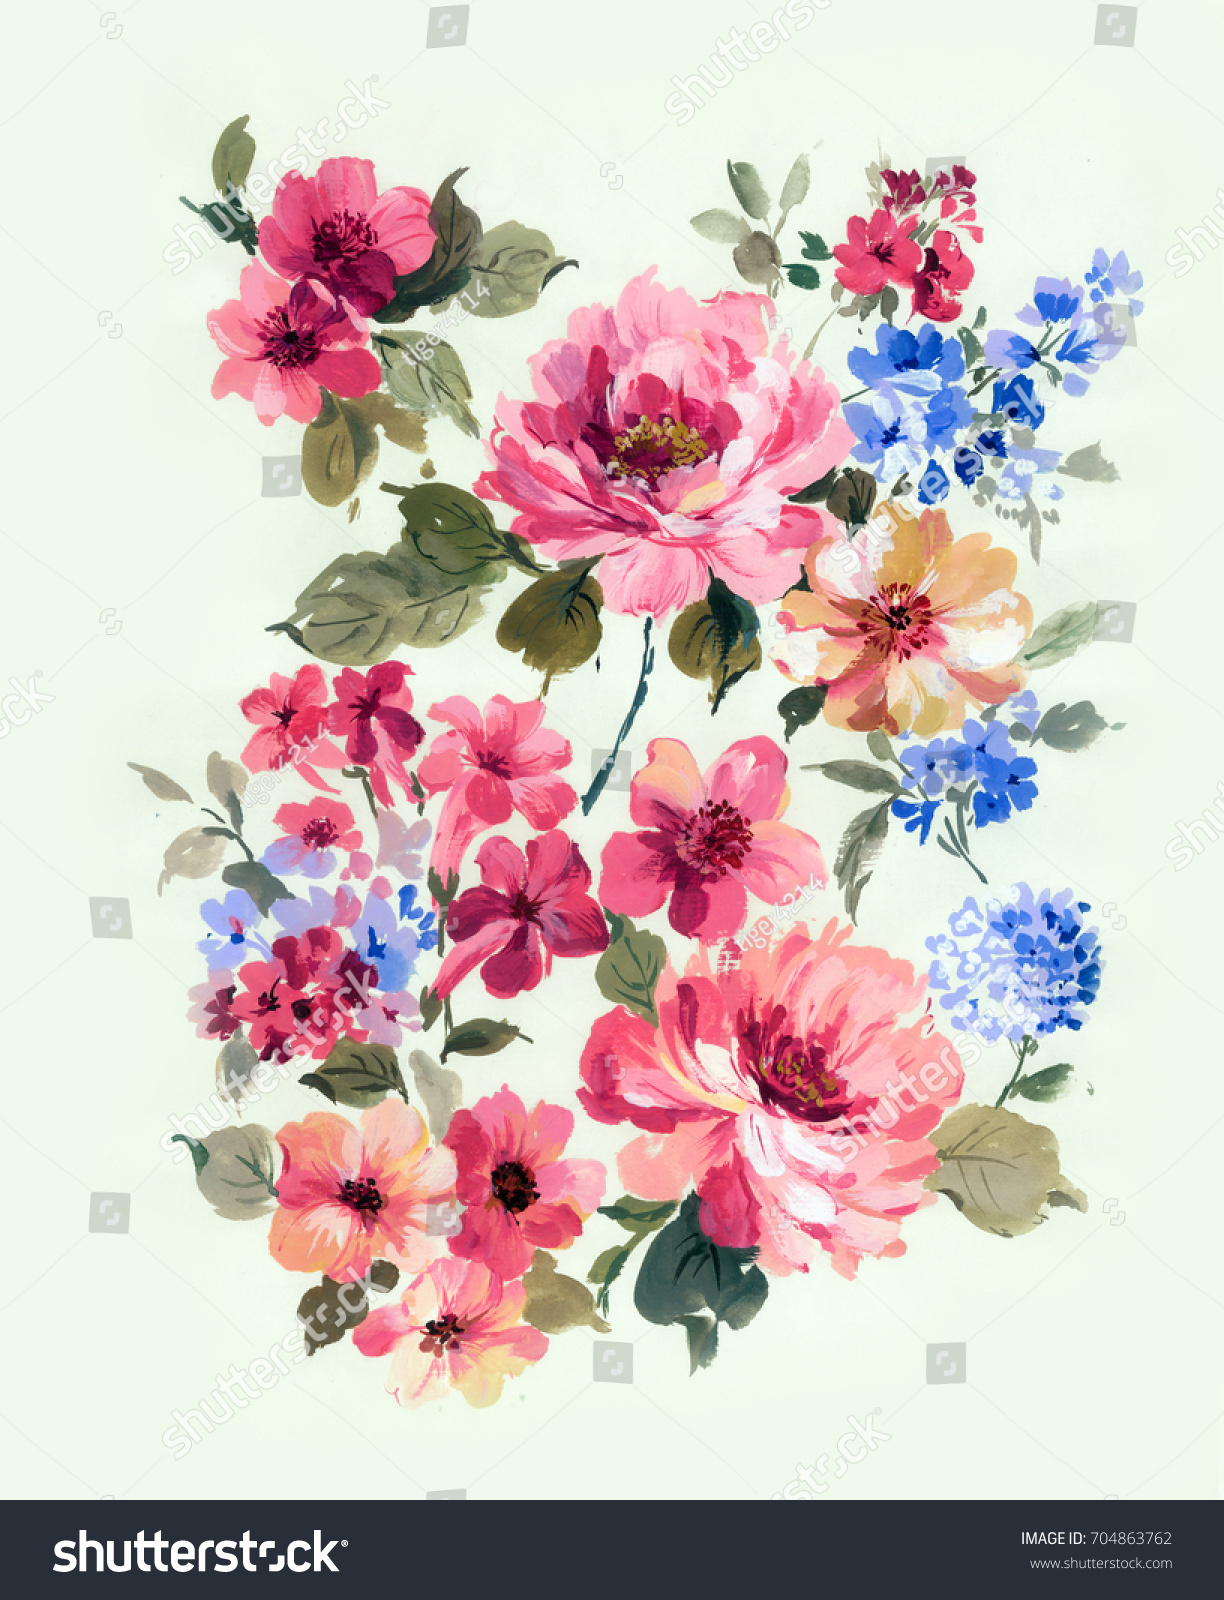 Enthusiasm Bold Unrestrained Flowers Leaves Flowers Stock